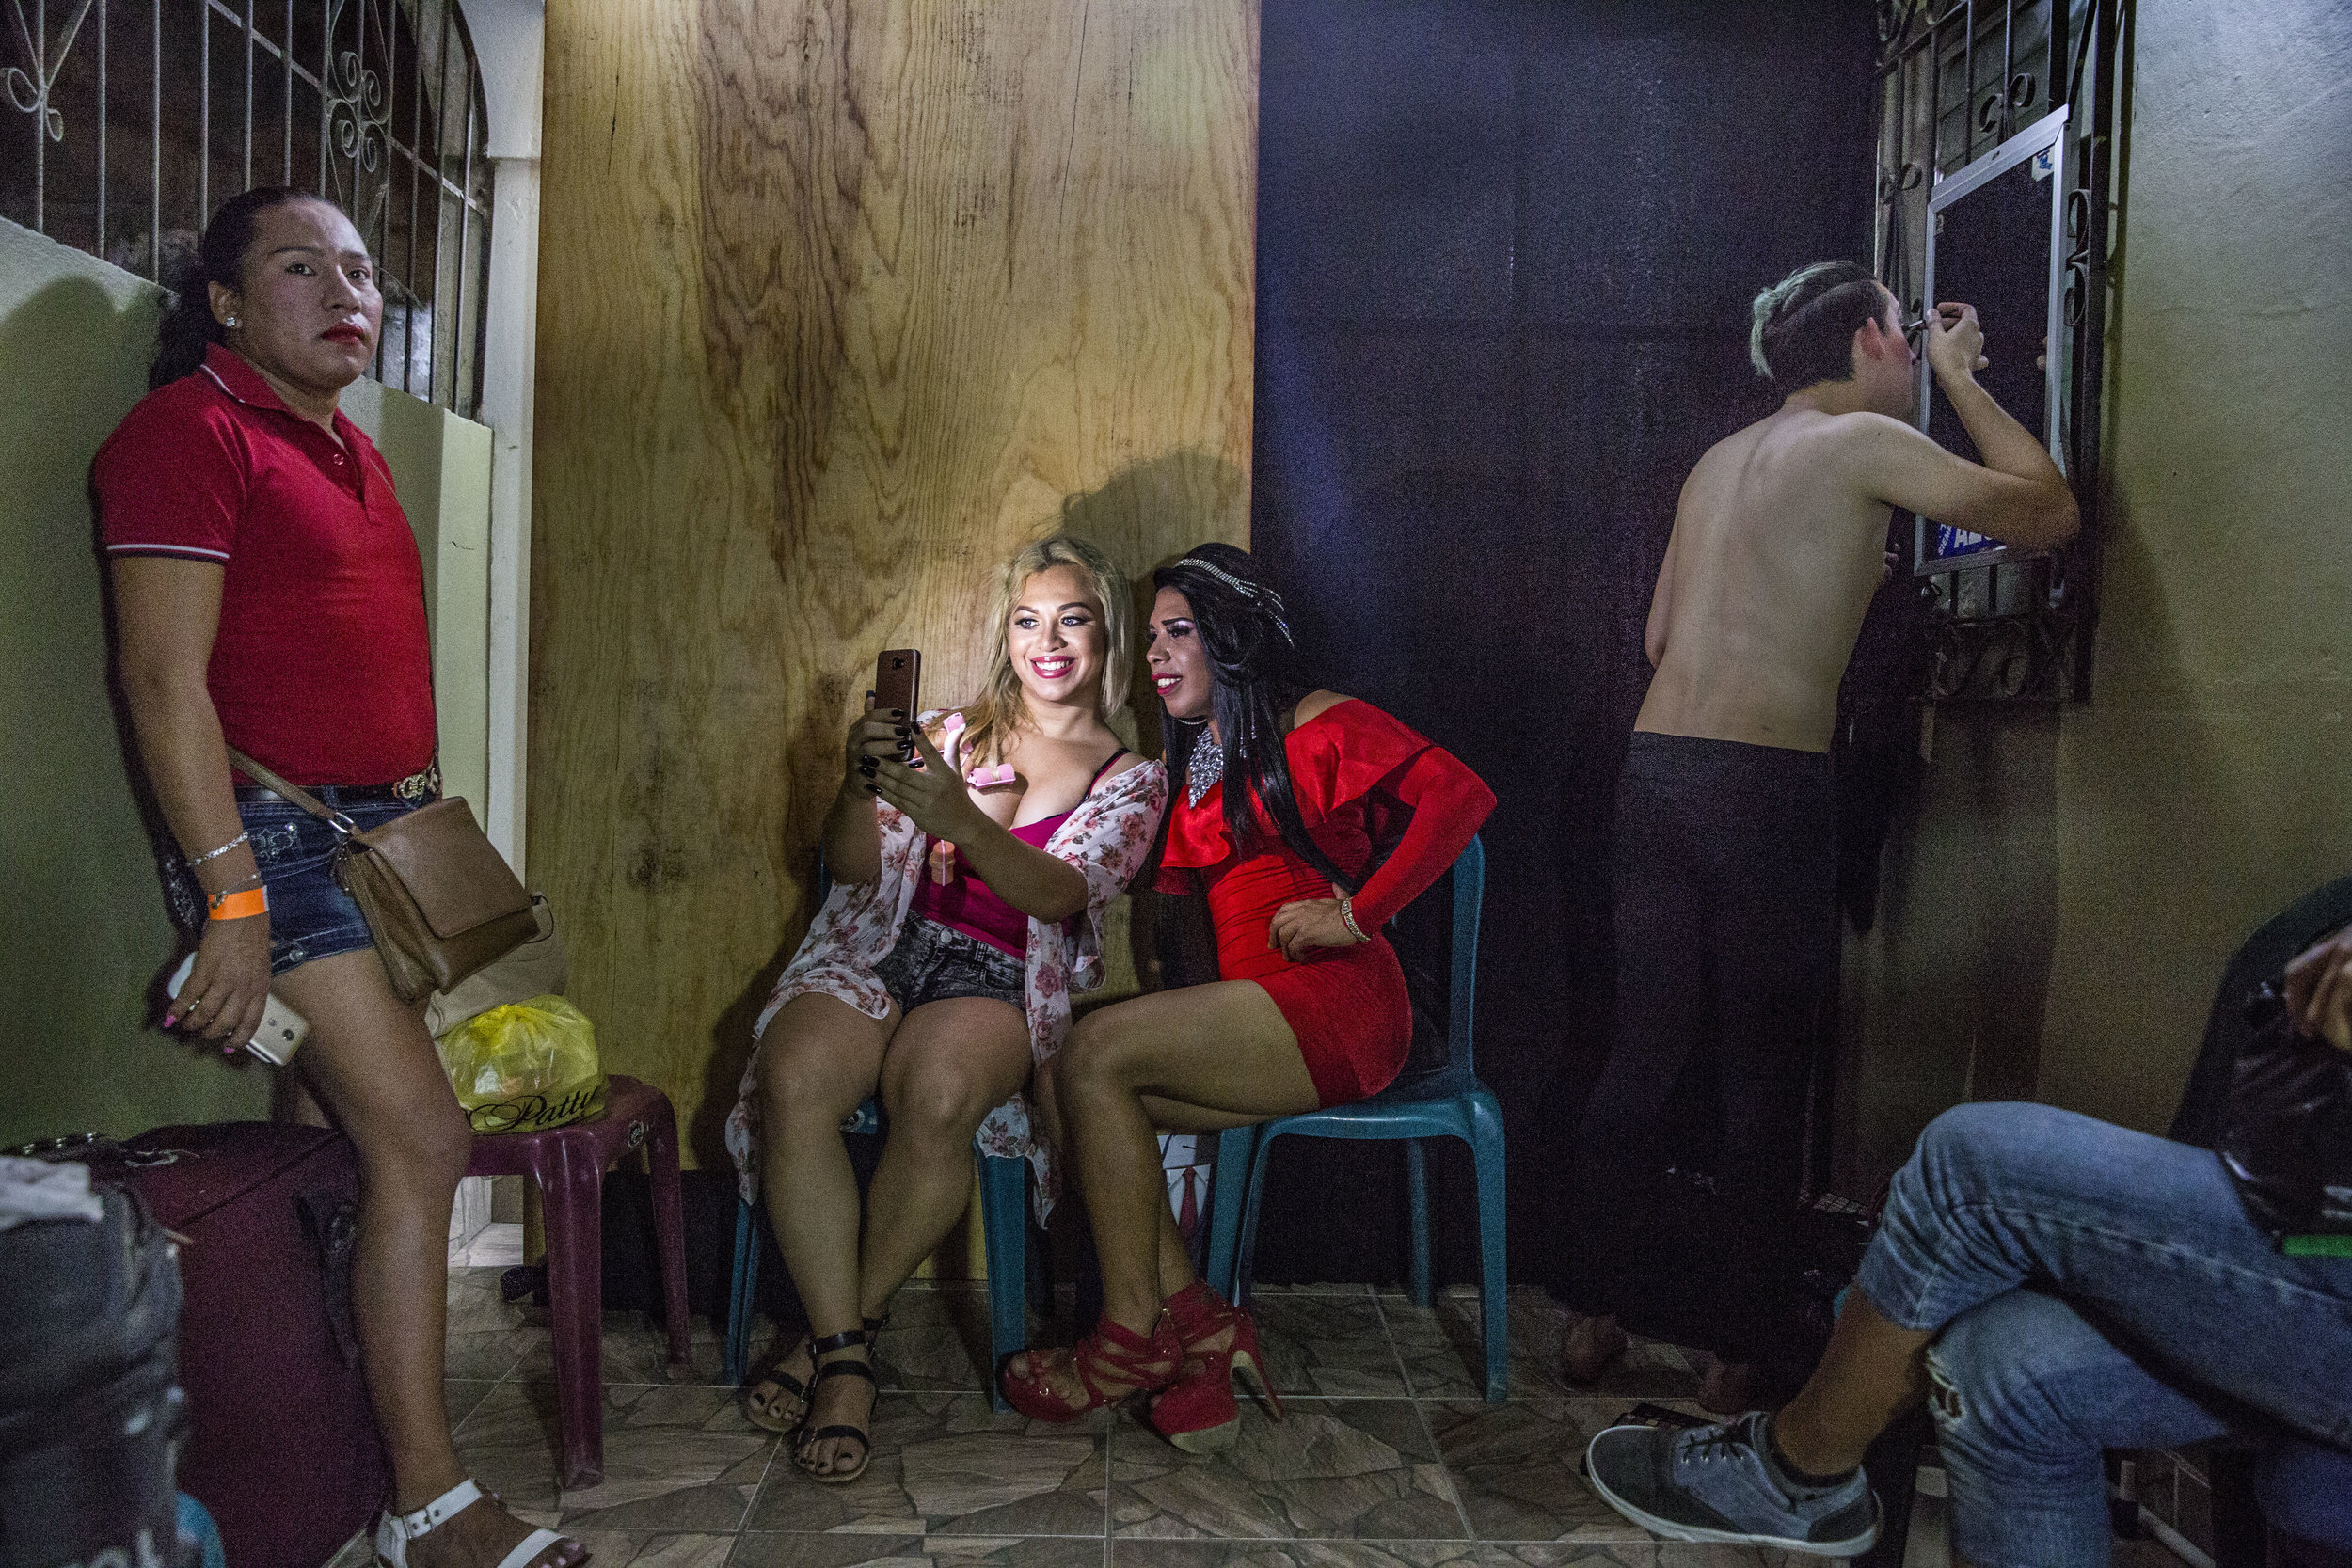 Briana (right) with her friend Ruby, a transgender from San Pedro Sula, take a selfie in the backstage of a beauty contest event. Ruby won the competition that night.